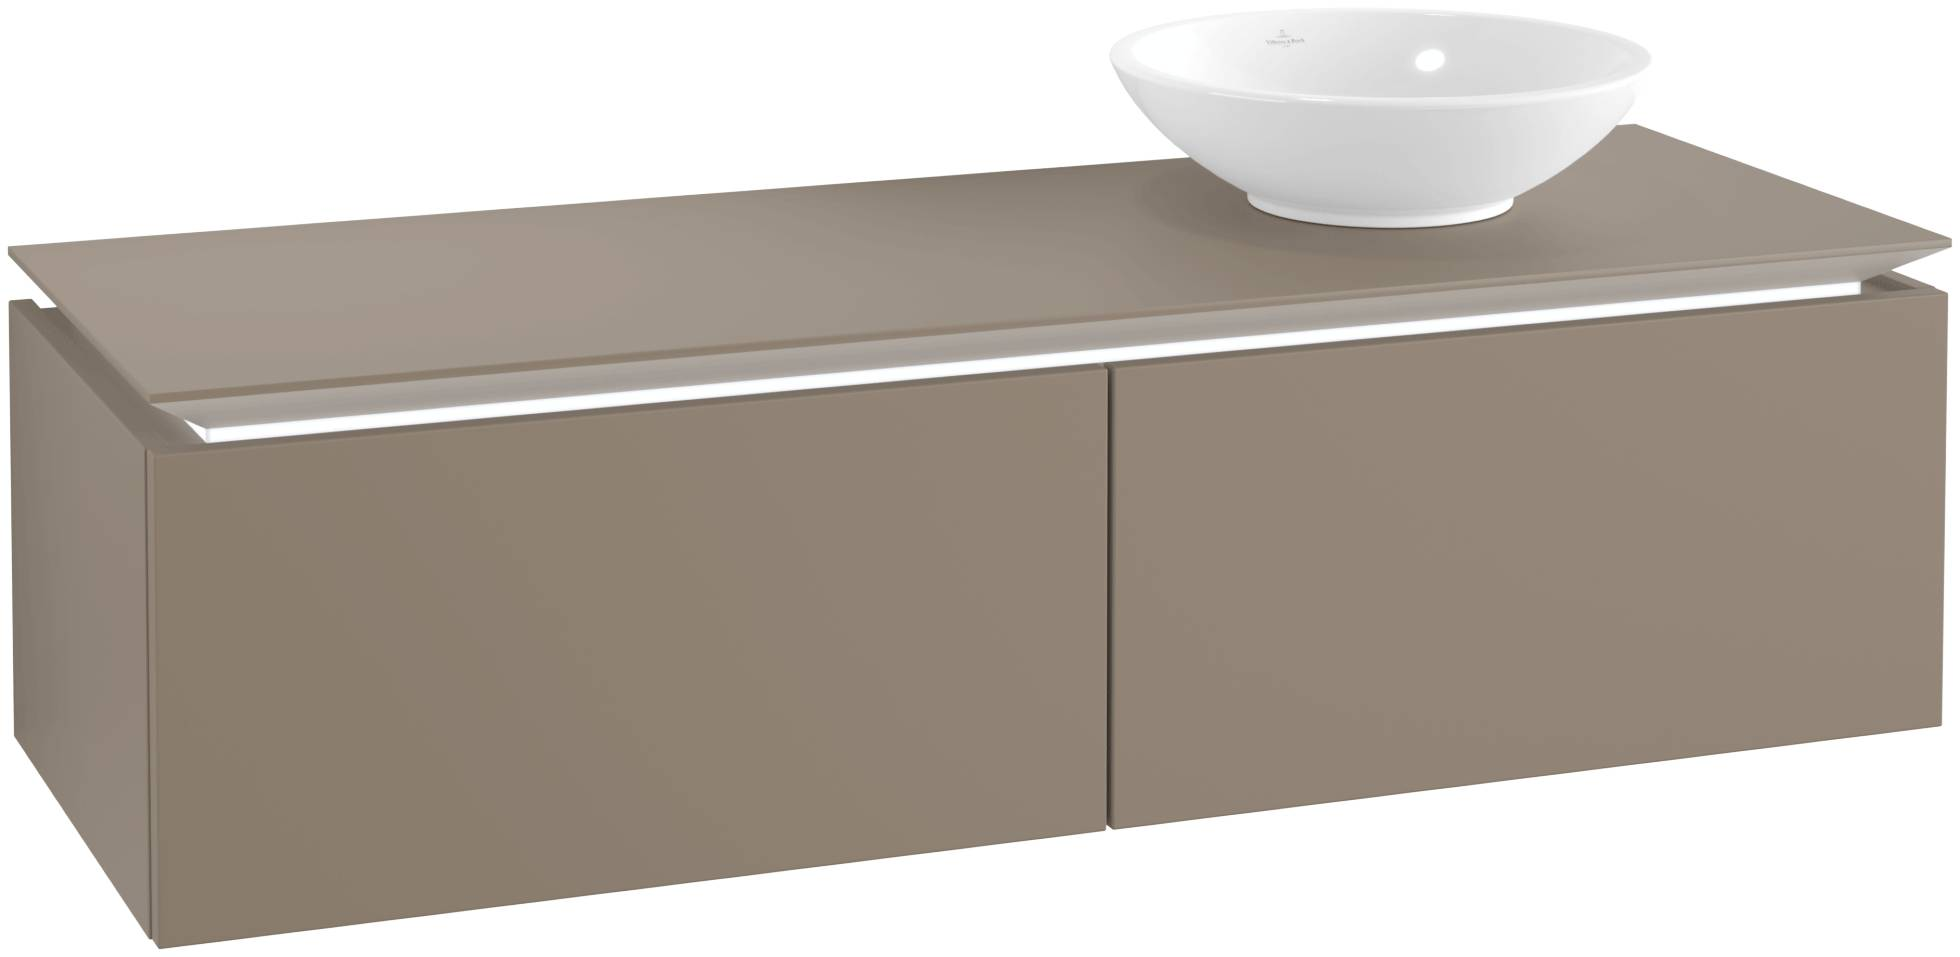 Villeroy & Boch Villeroy & Boch Legato - Meuble sous lavabo with 2 drawers & 1 cut-out right 1400 x 380 x 500mm truffle grey